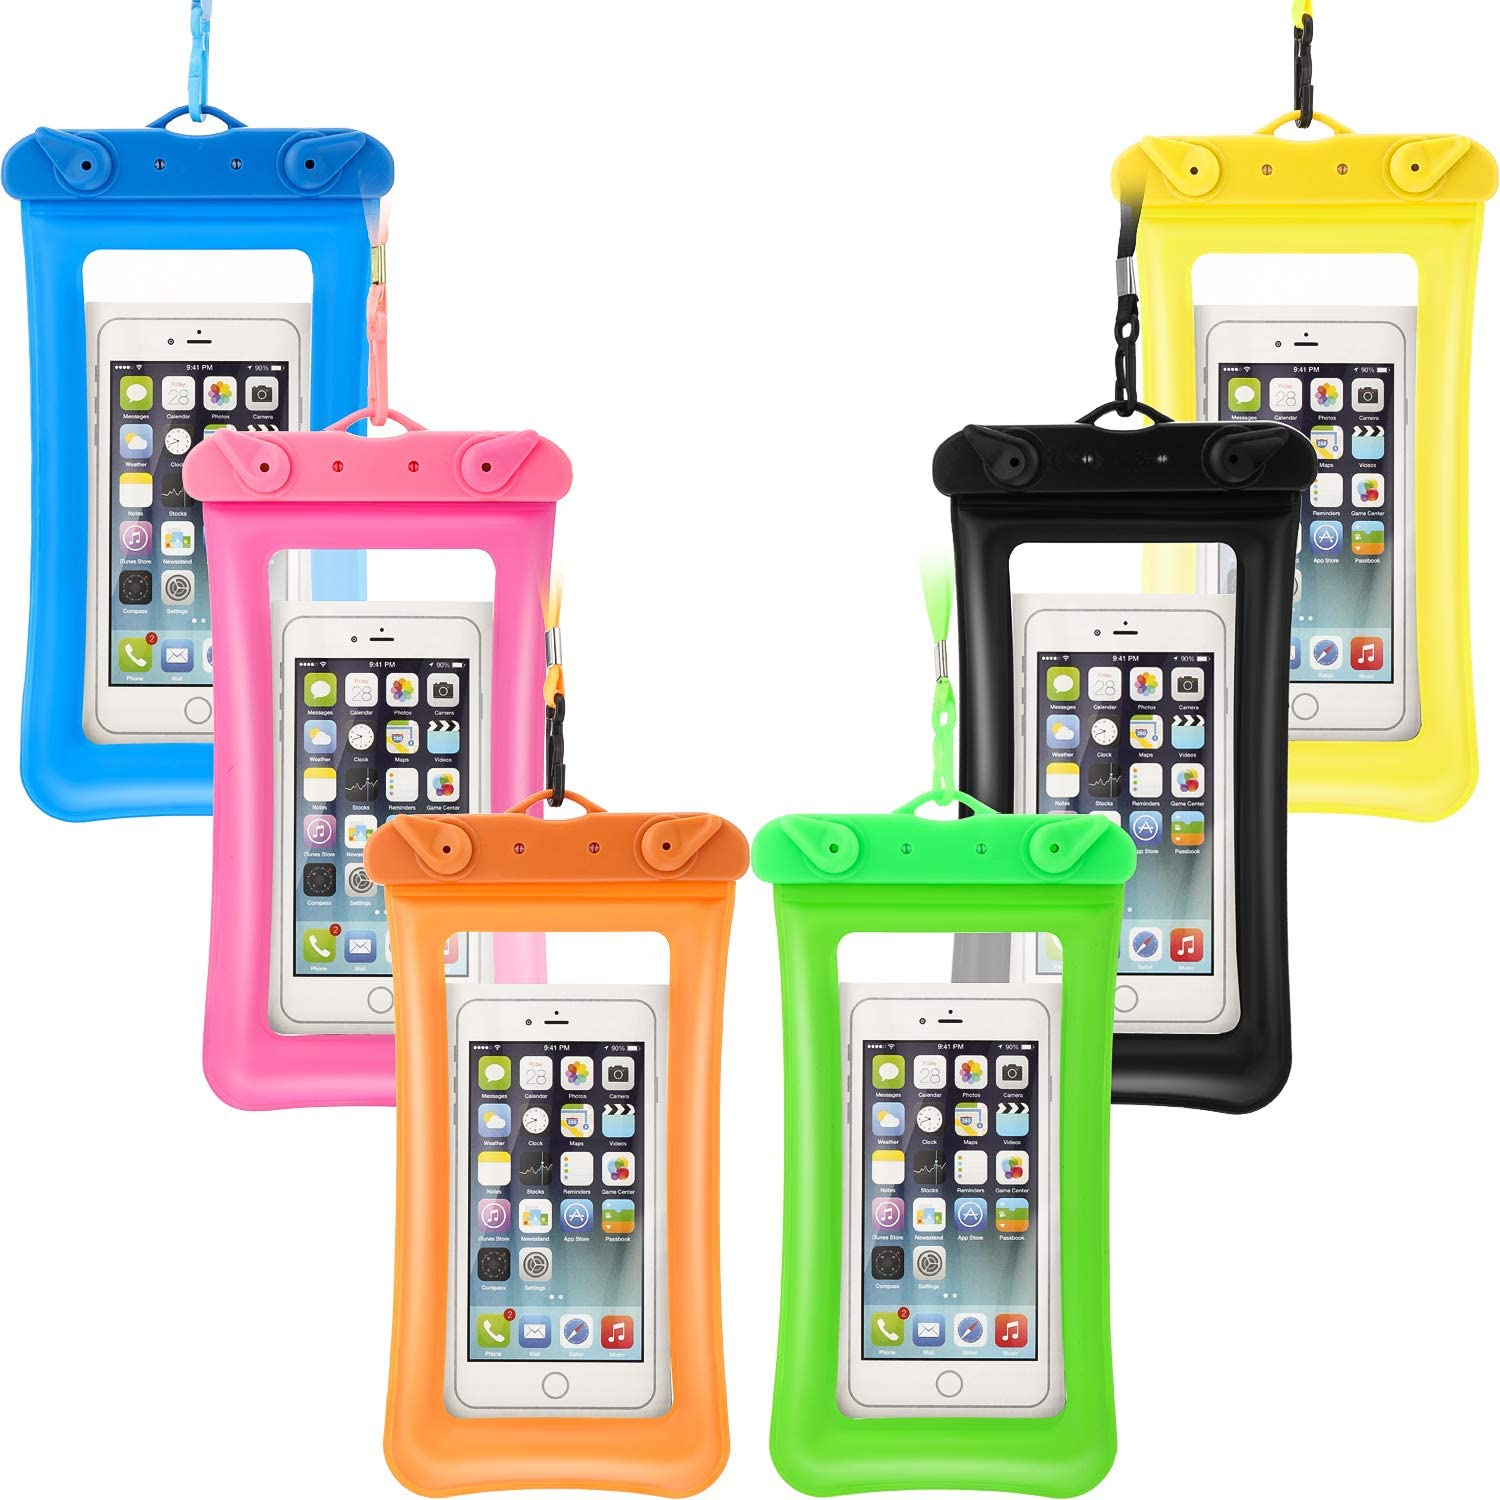 6 Piece Floatable Waterproof Phone Pouch Floating Waterproof Cell Phone Case Universal Cellphone Dry Bag Case with Lanyard for Smartphone up to 6.5 Inch (Purple, Green, Rose Red, Blue, Black, Orange)